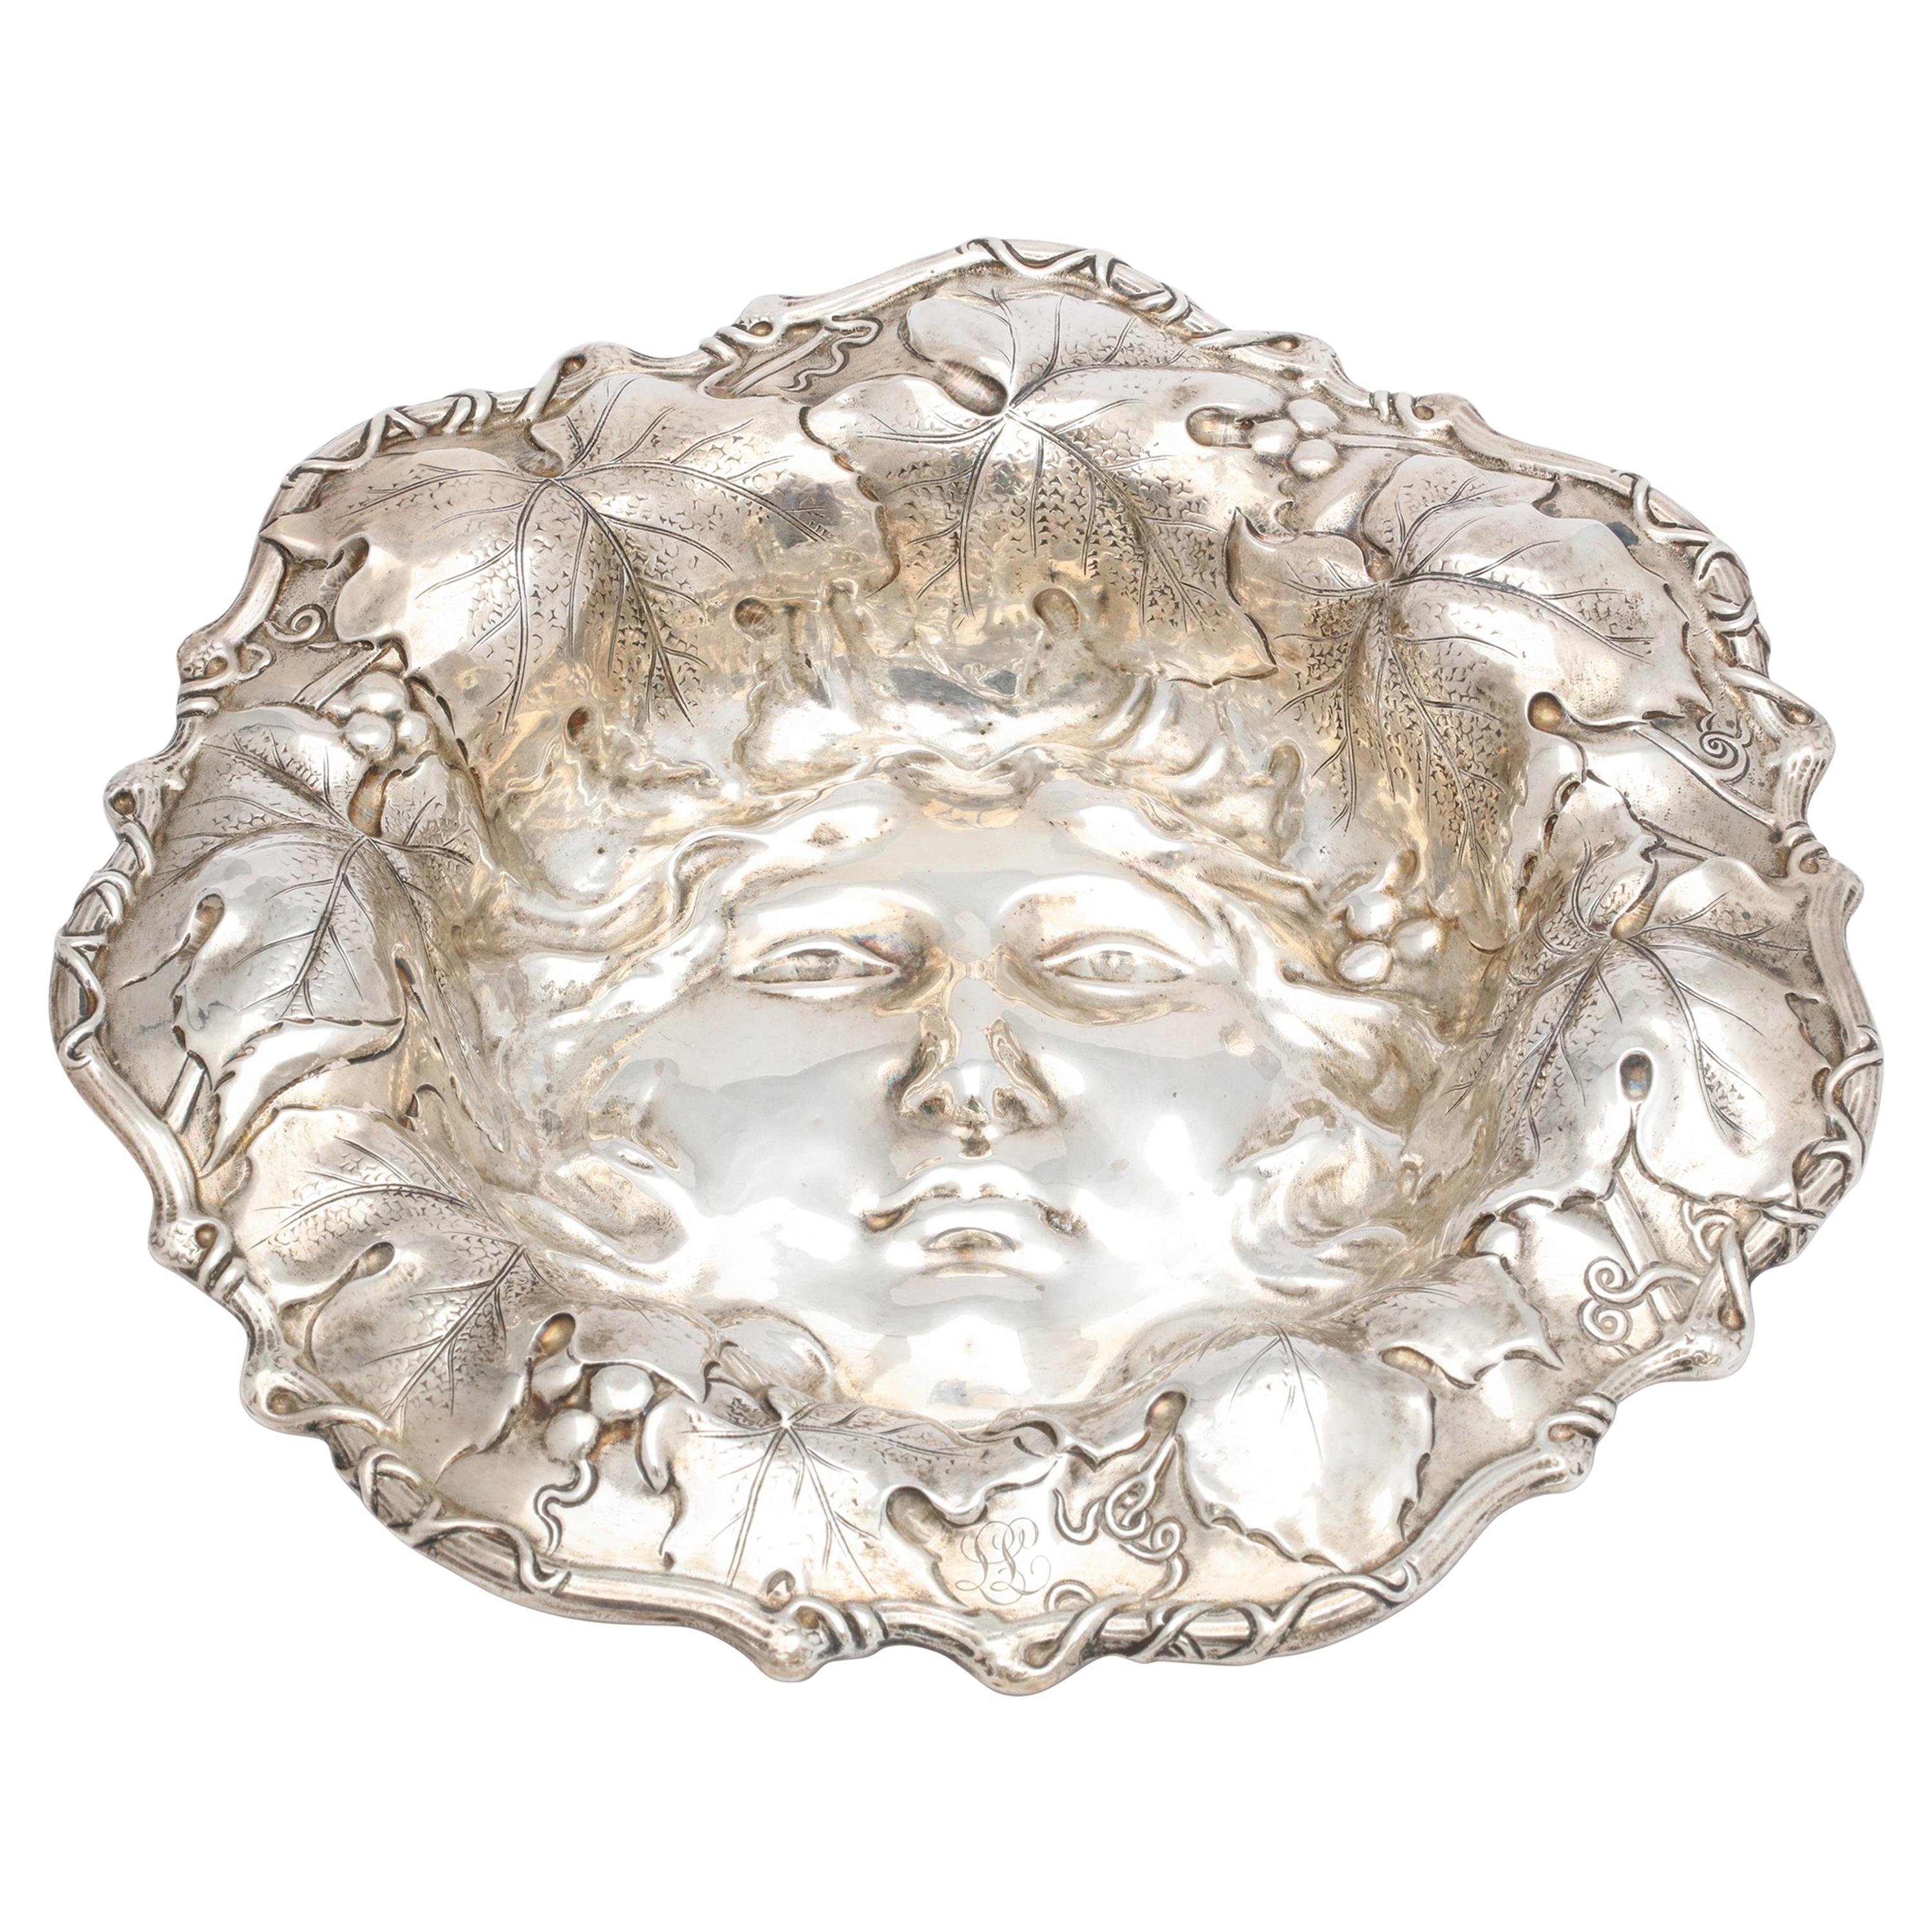 Art Nouveau Sterling Silver Bowl by Whiting Mfg. Co